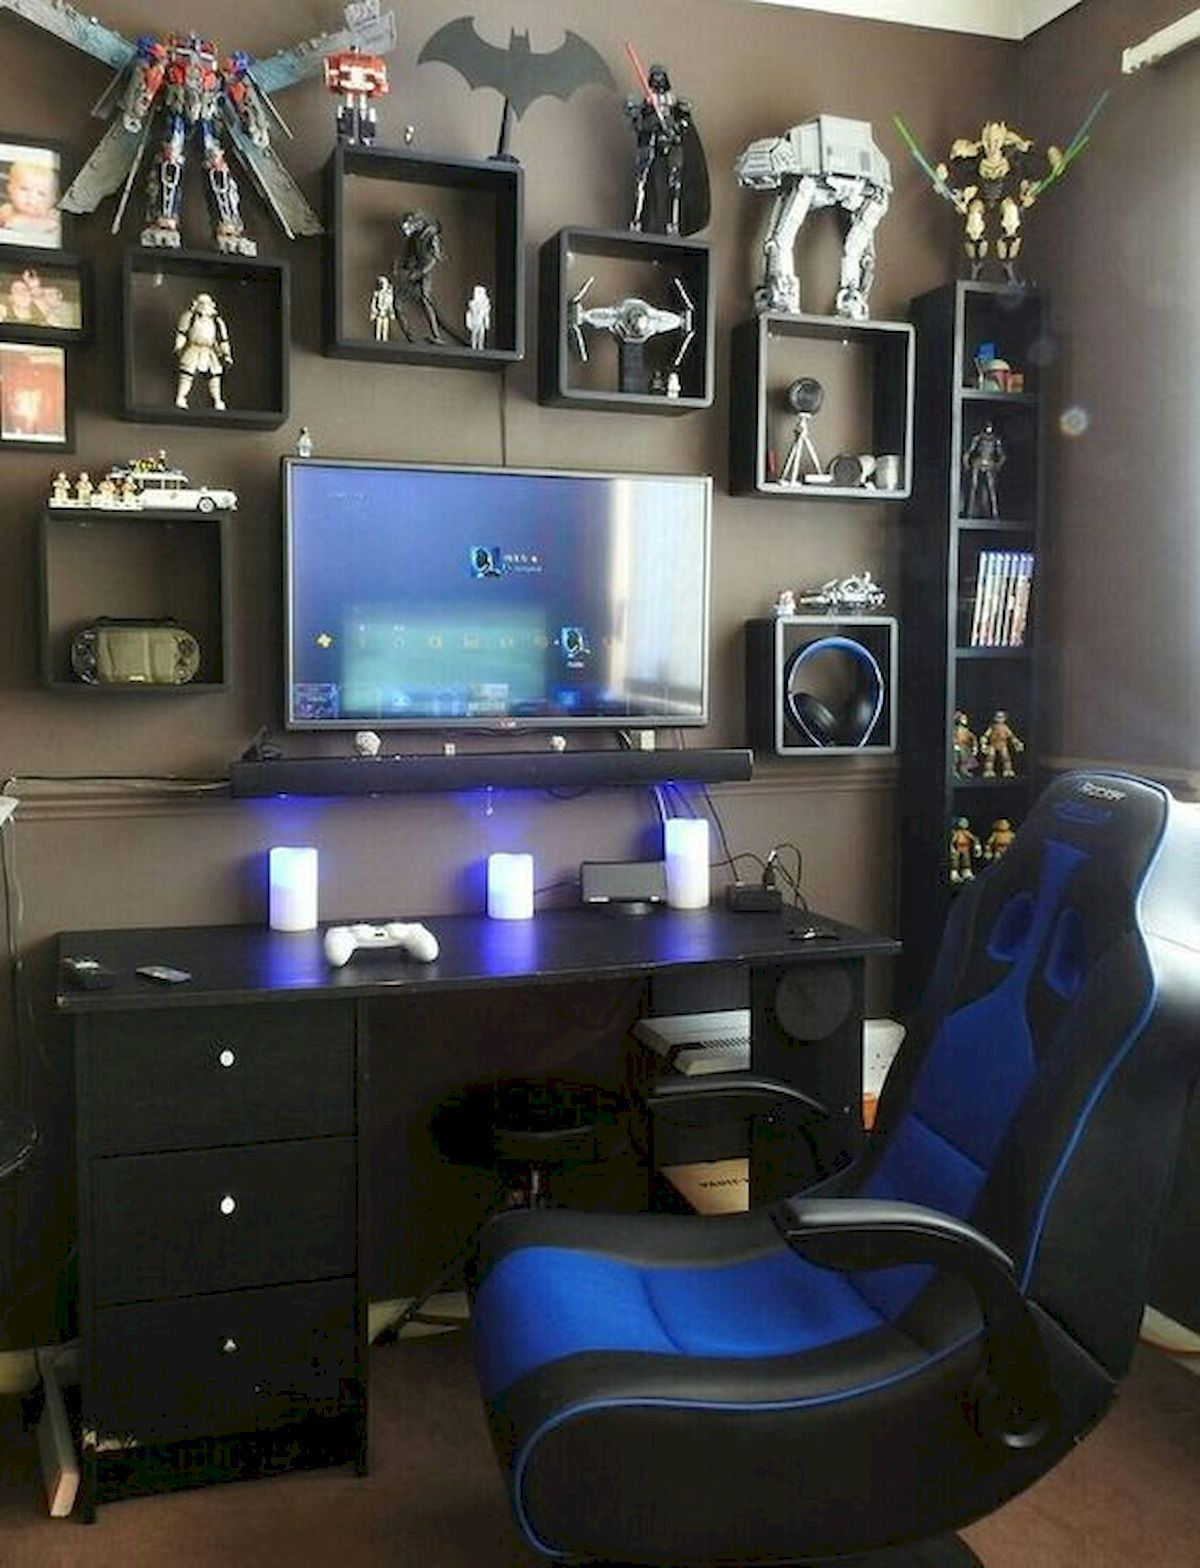 45 Fantastic Computer Gaming Room Decor Ideas and Design (1 images